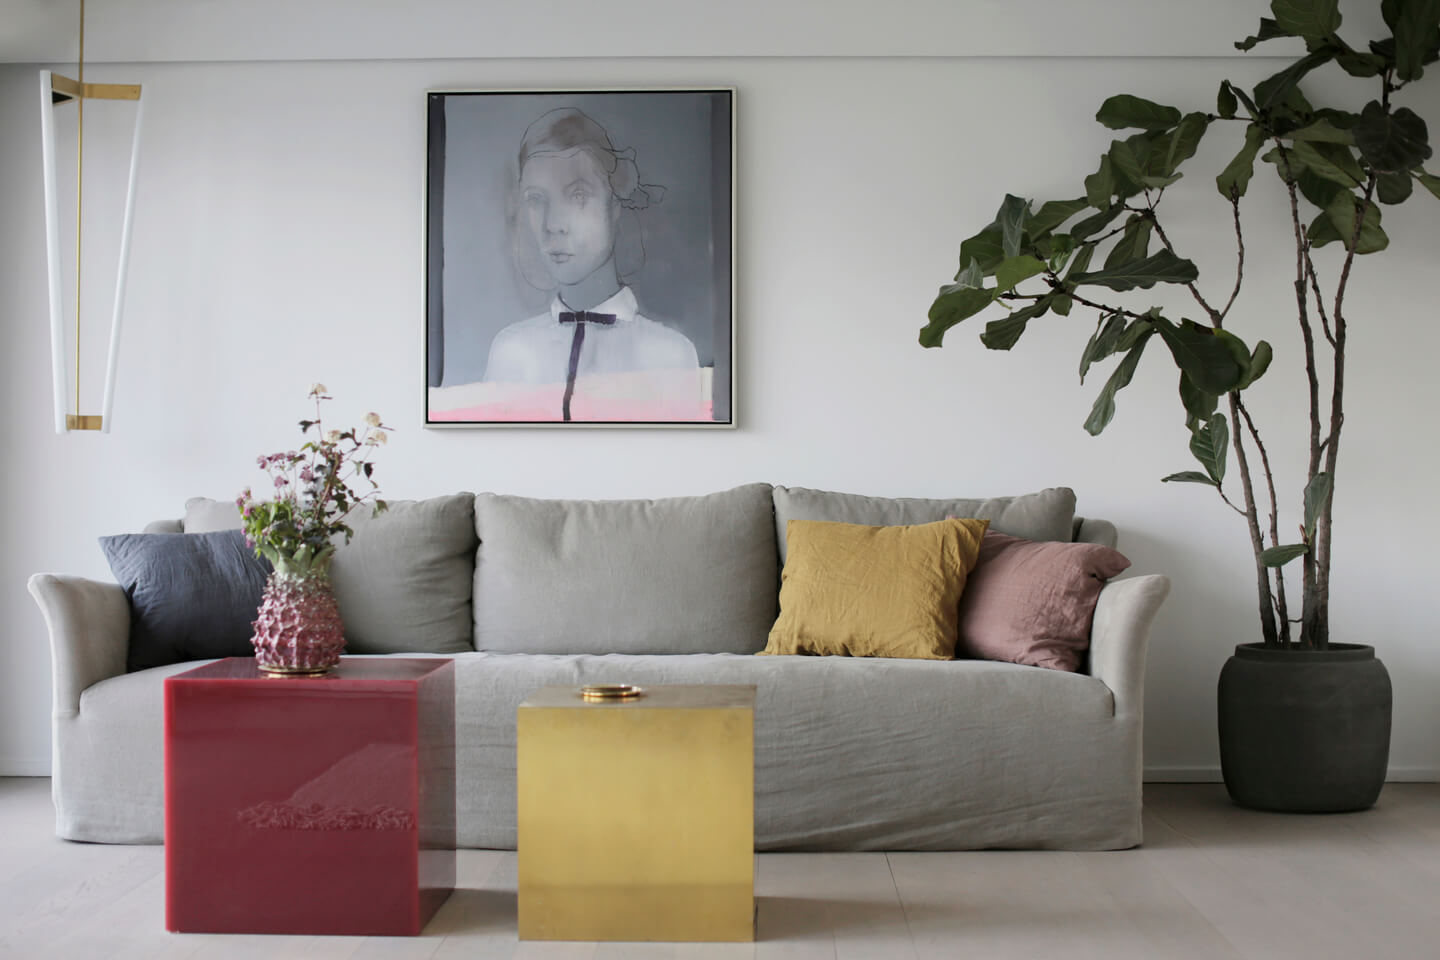 At home with Tine Holt Møller